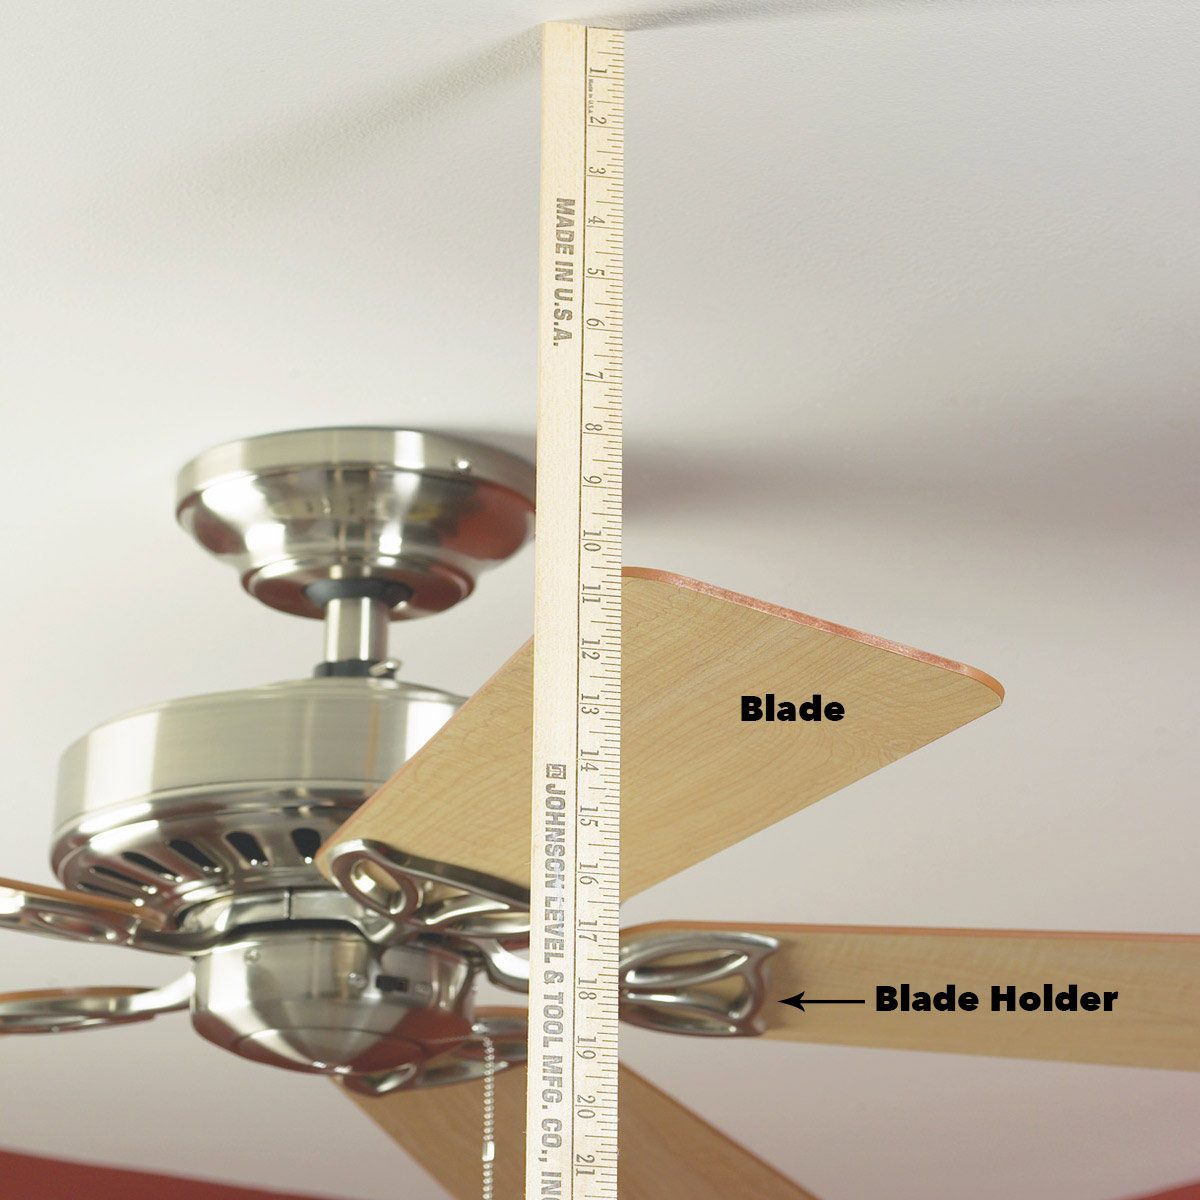 The Blades Are Bent or Unbalanced